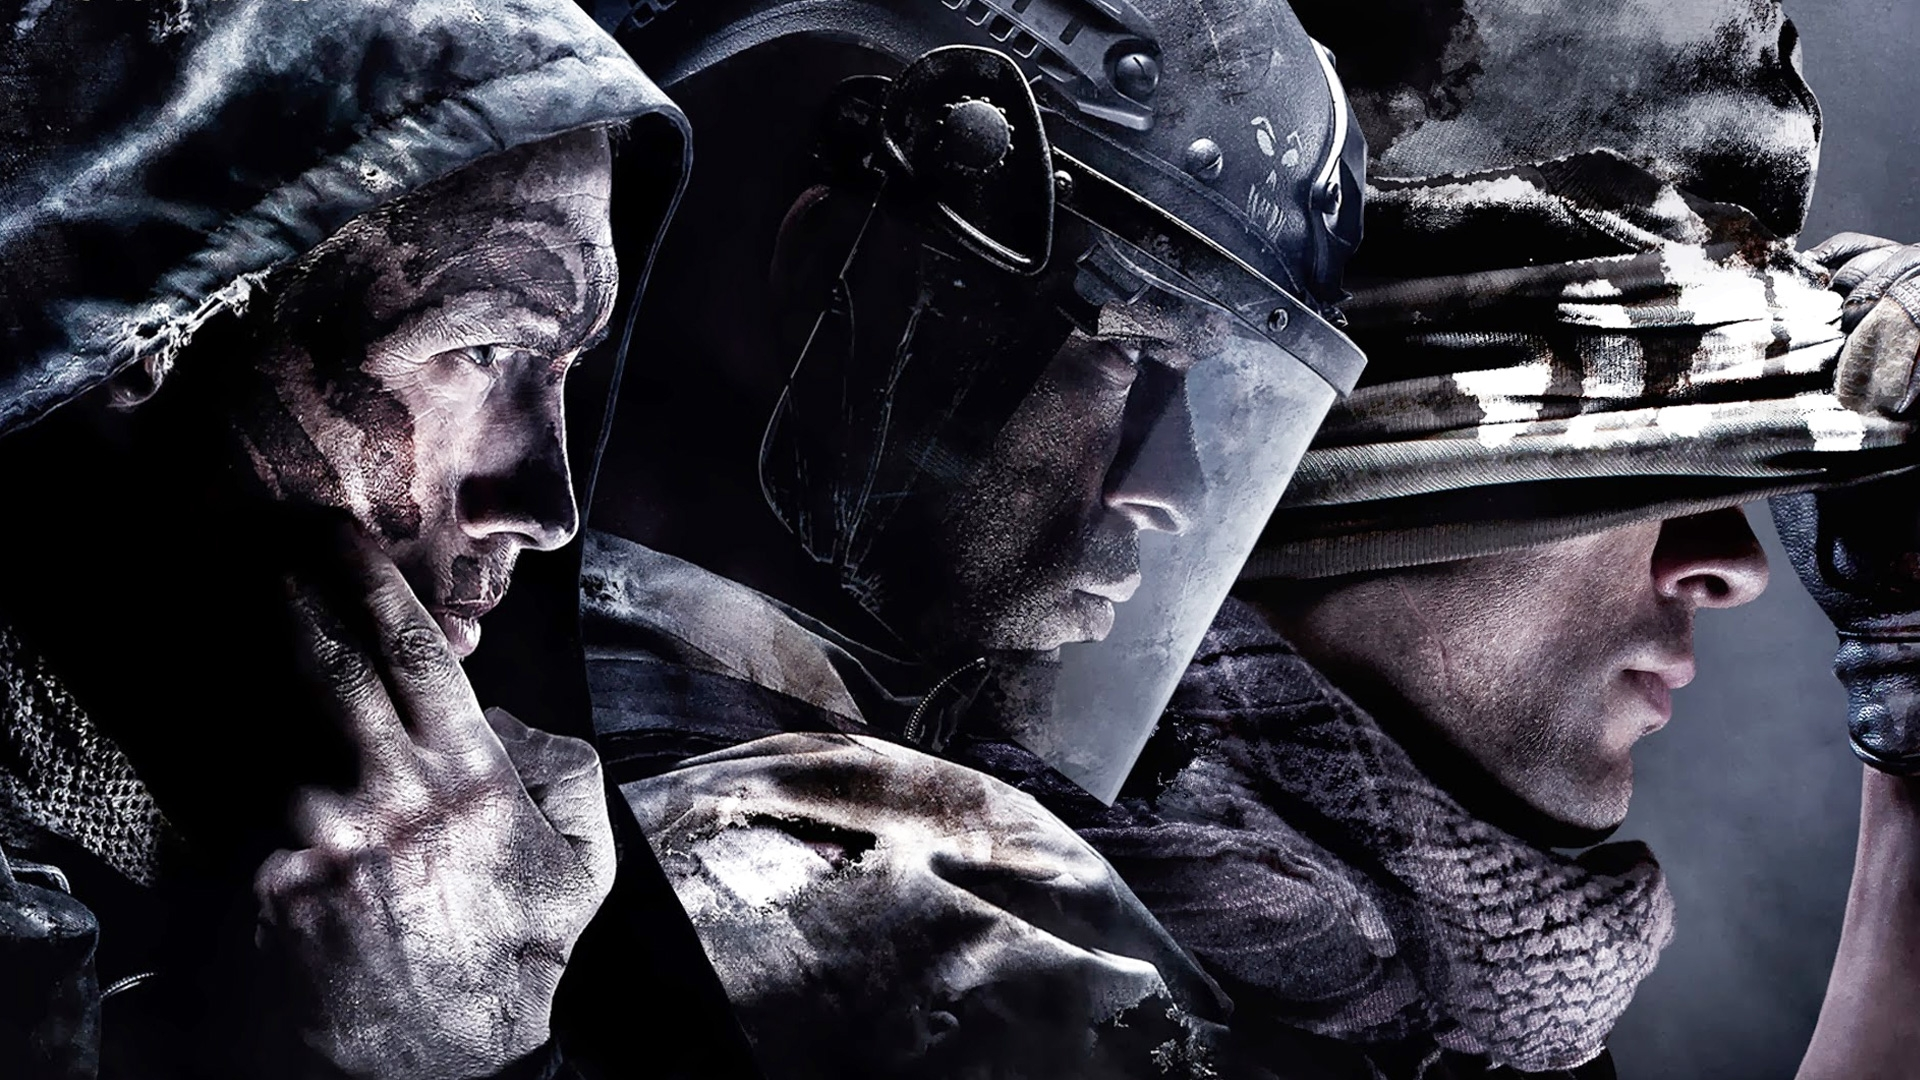 Call of Duty Ghost Wallpaper 1920x1080